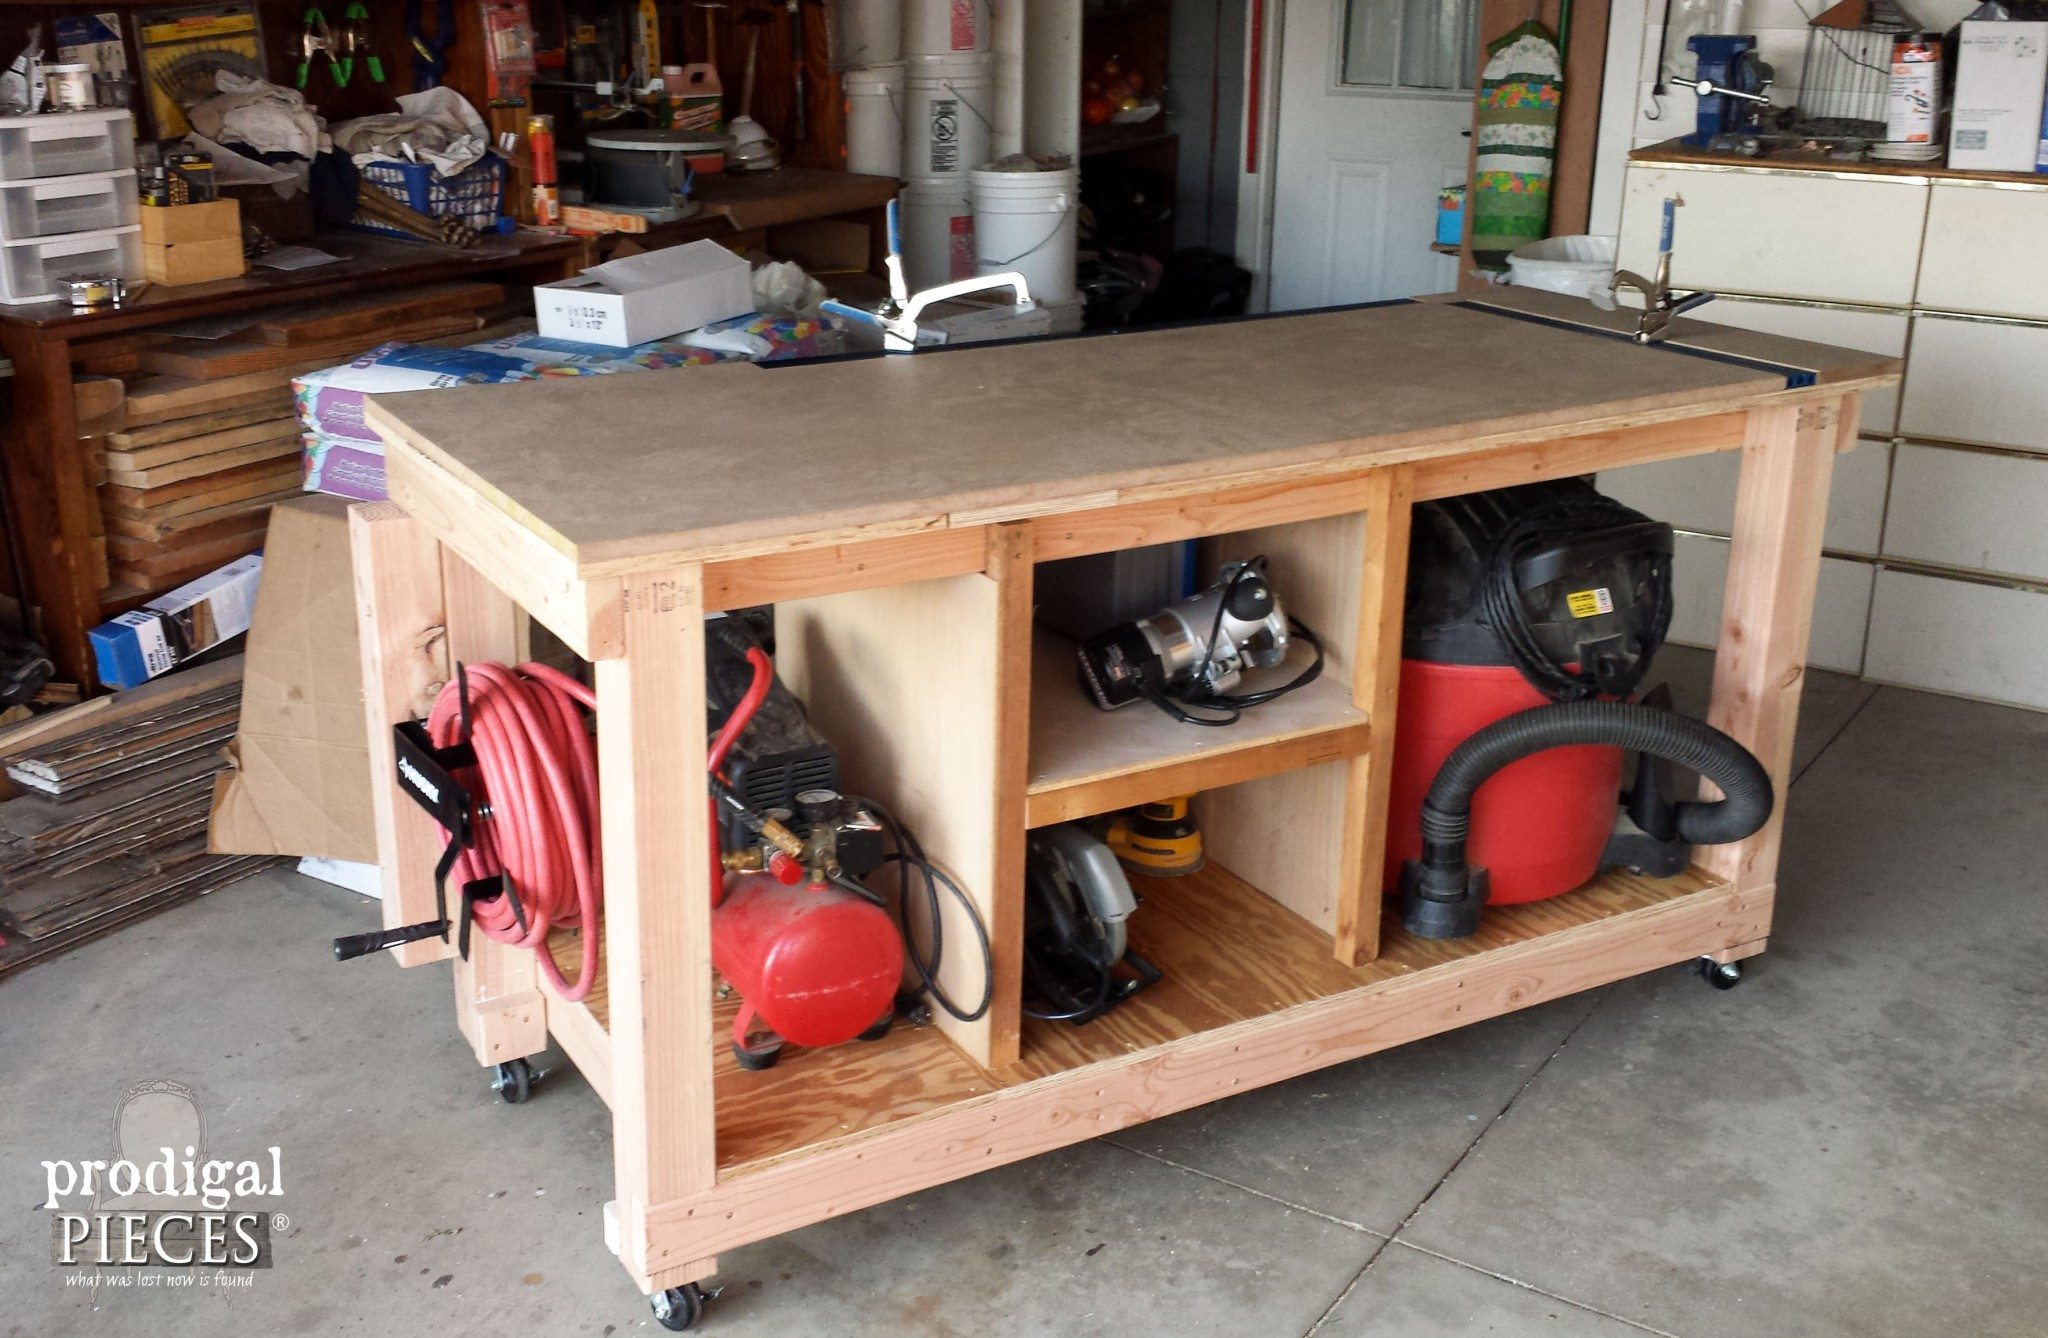 Best ideas about Work Bench DIY . Save or Pin DIY Workbench Fit for a Junker Prodigal Pieces Now.